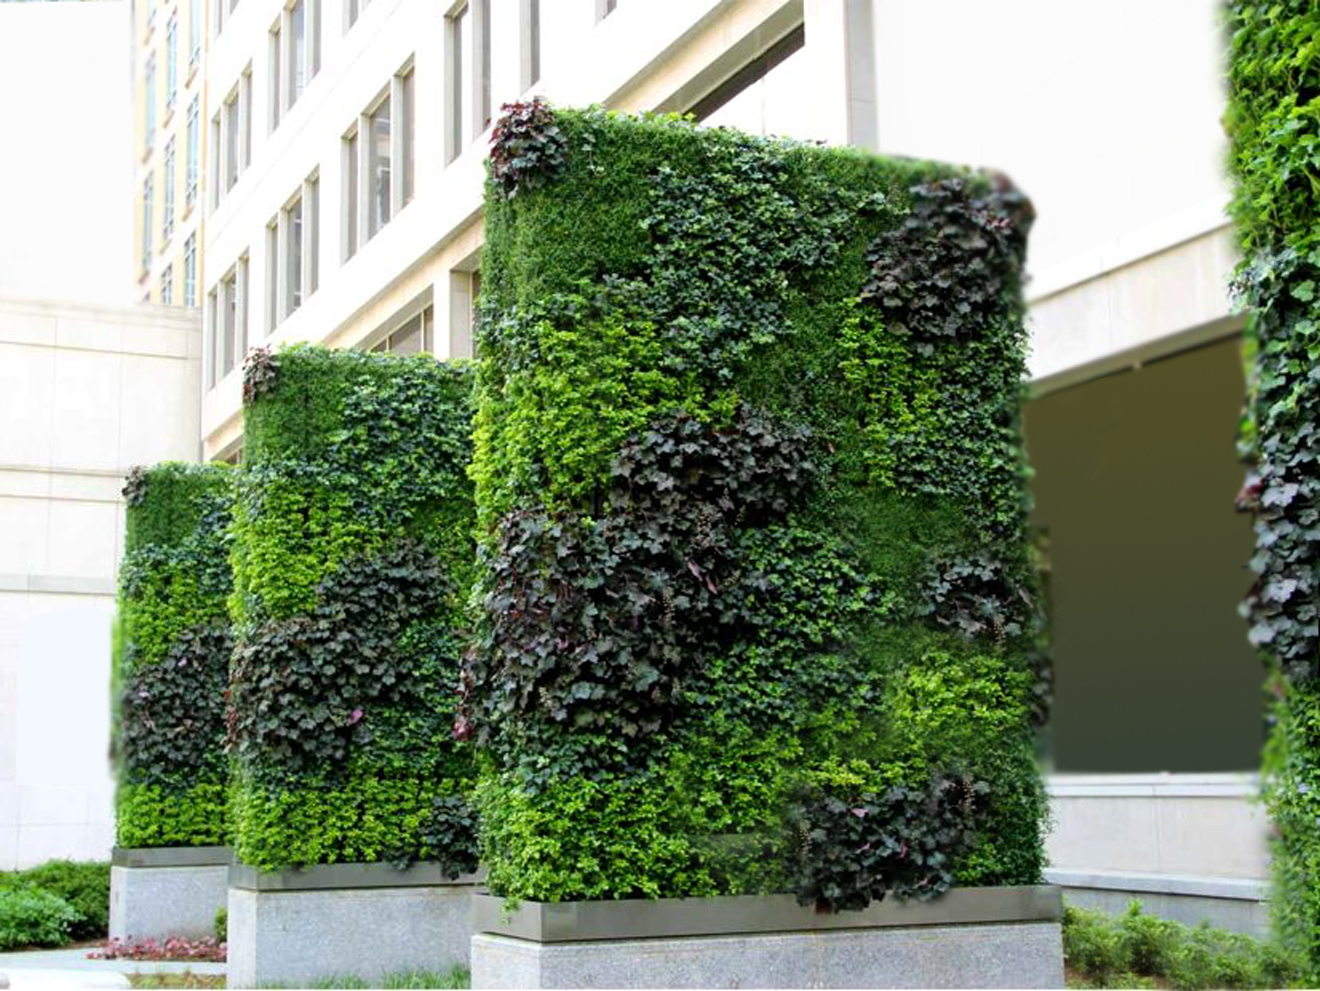 Vertikal Gardinen World Class Green Wall Vertical Garden By Technic Garden